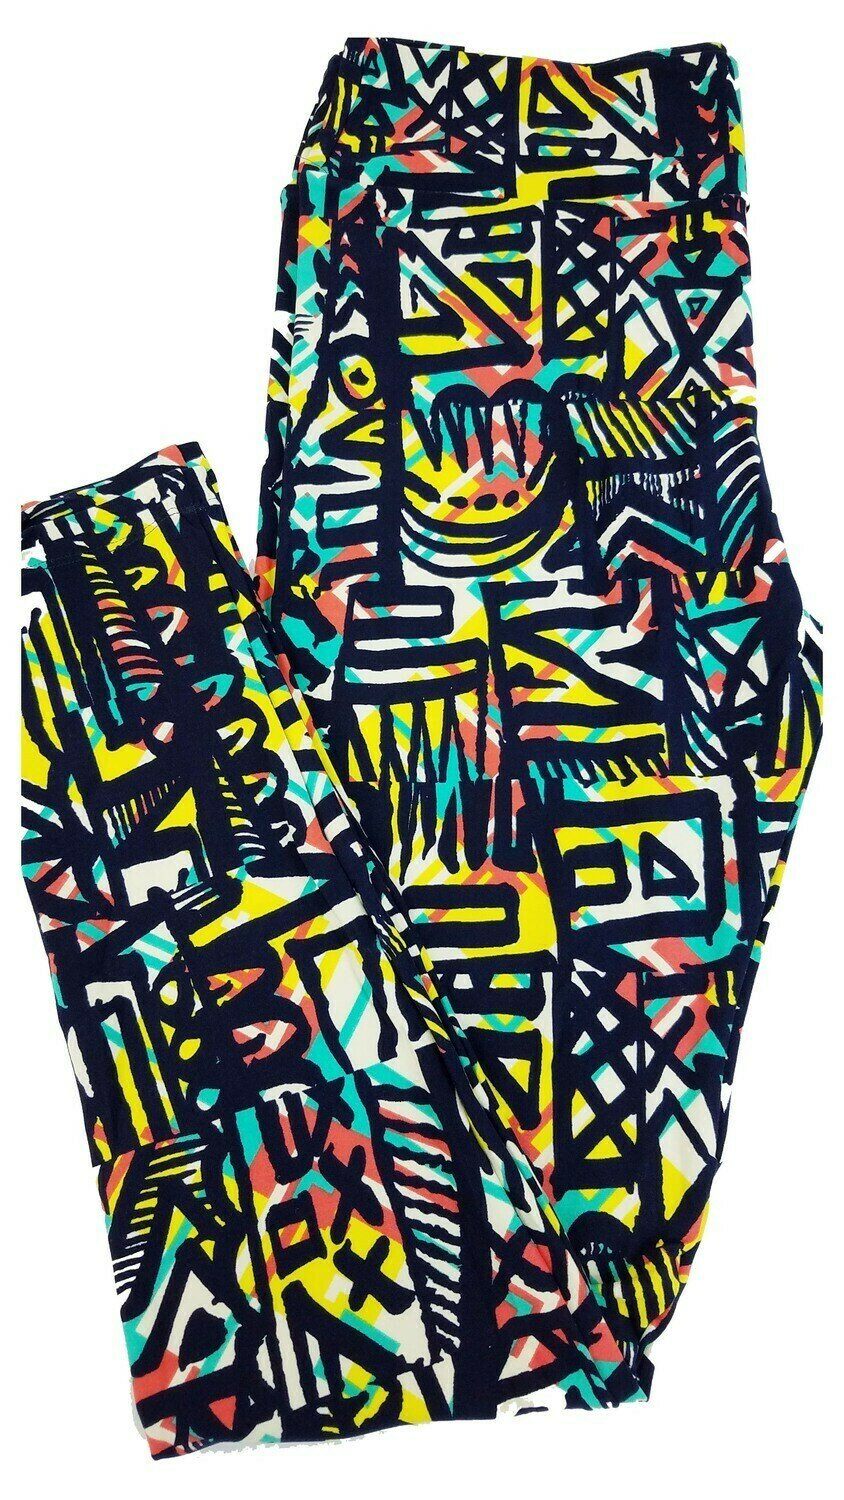 LuLaRoe Tall Curvy TC Navy Yellow Coral Teal Geometric Leggings Michigan Wolverines fits 12-18